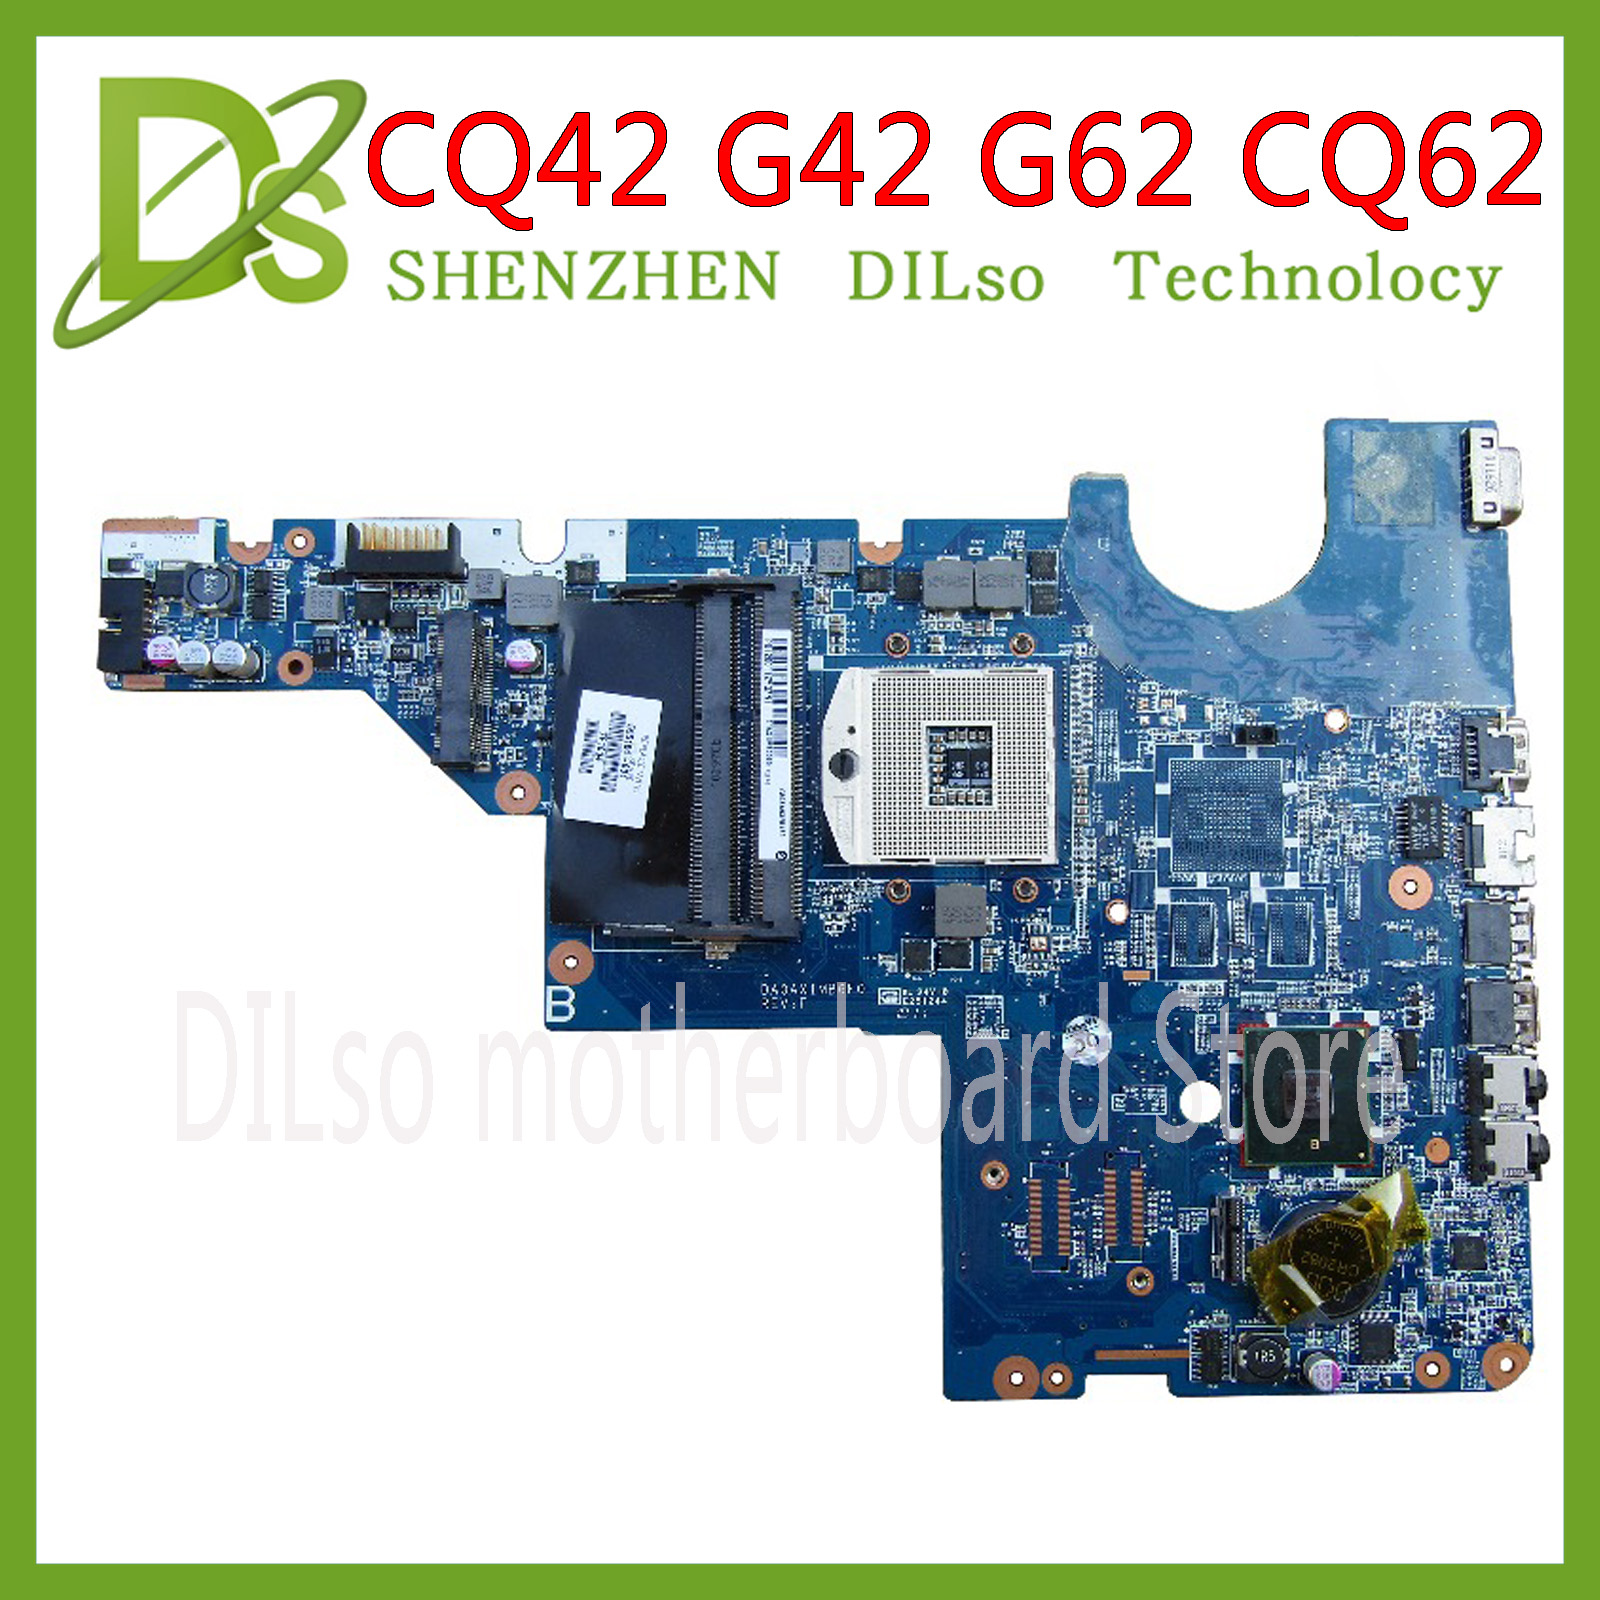 KEFU CQ62 For HP Motherboard CQ42 G42 G62 CQ62 Laptop Motherboard DAOAX1MB6F0 DA0AX1MB6H0 100% Original